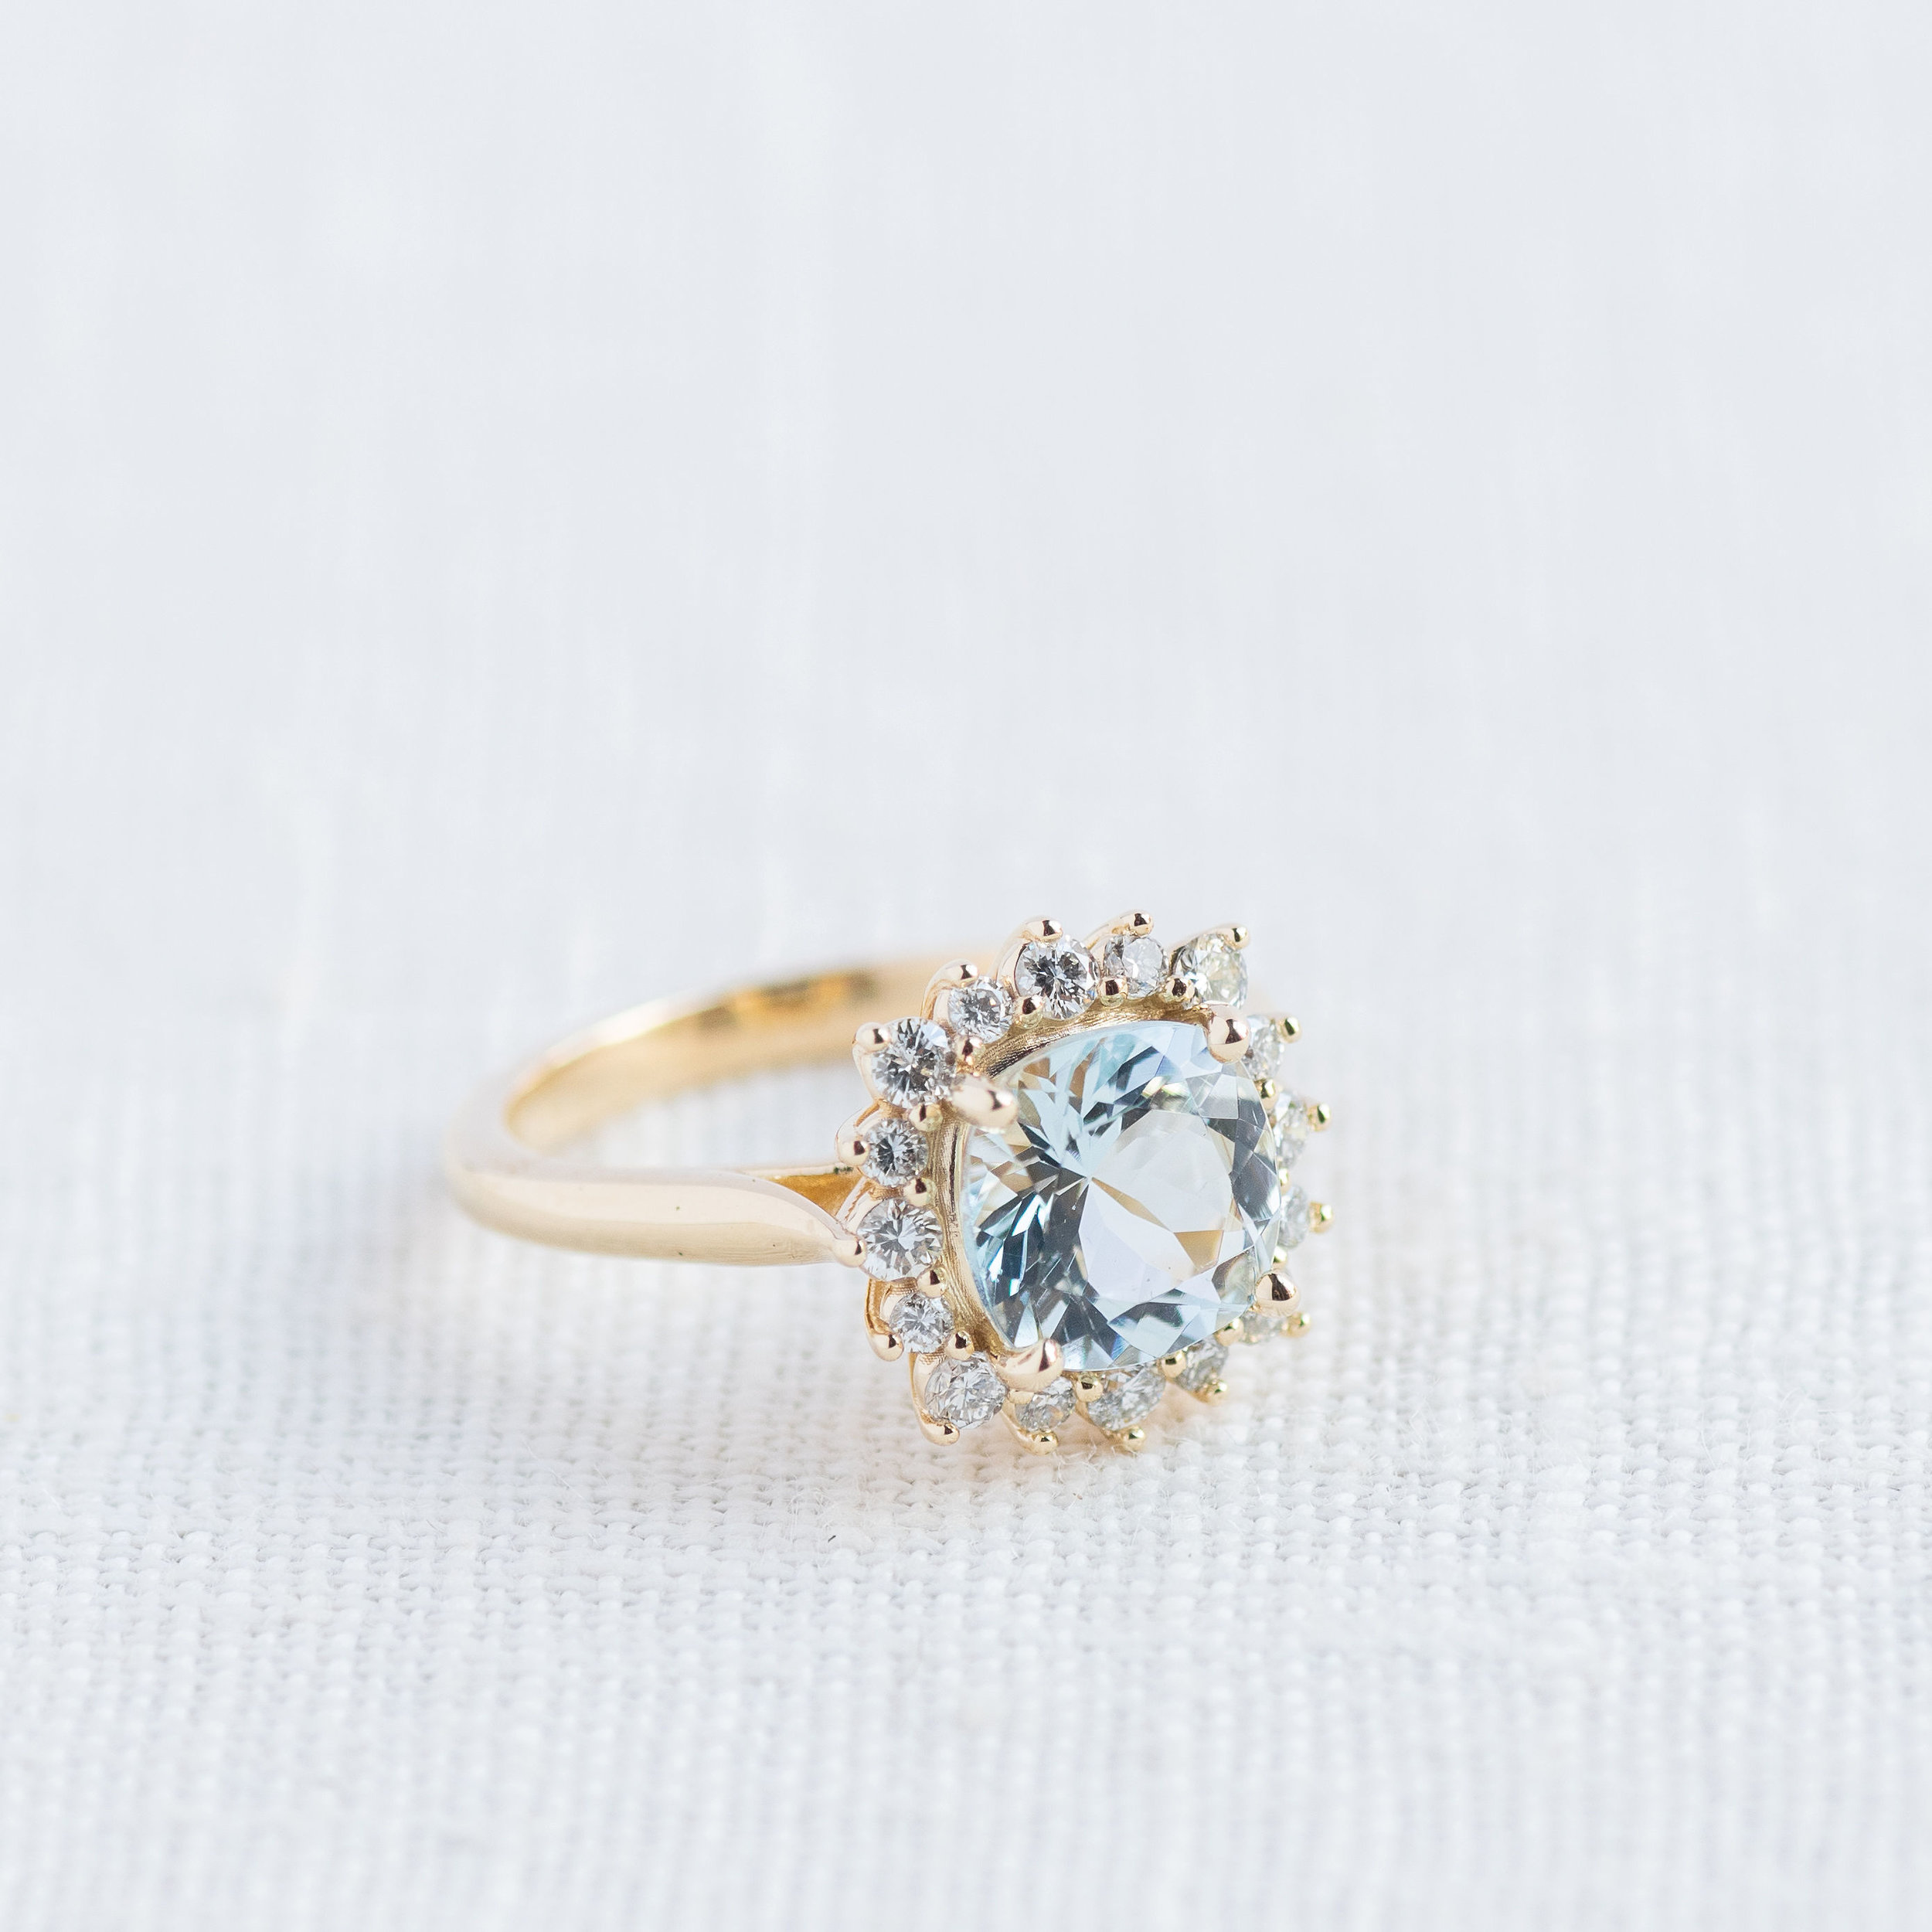 Cool off from the summer heat with this refreshing 1.95 carat aquamarine ring surrounded by diamonds! Click  HERE  to shop!